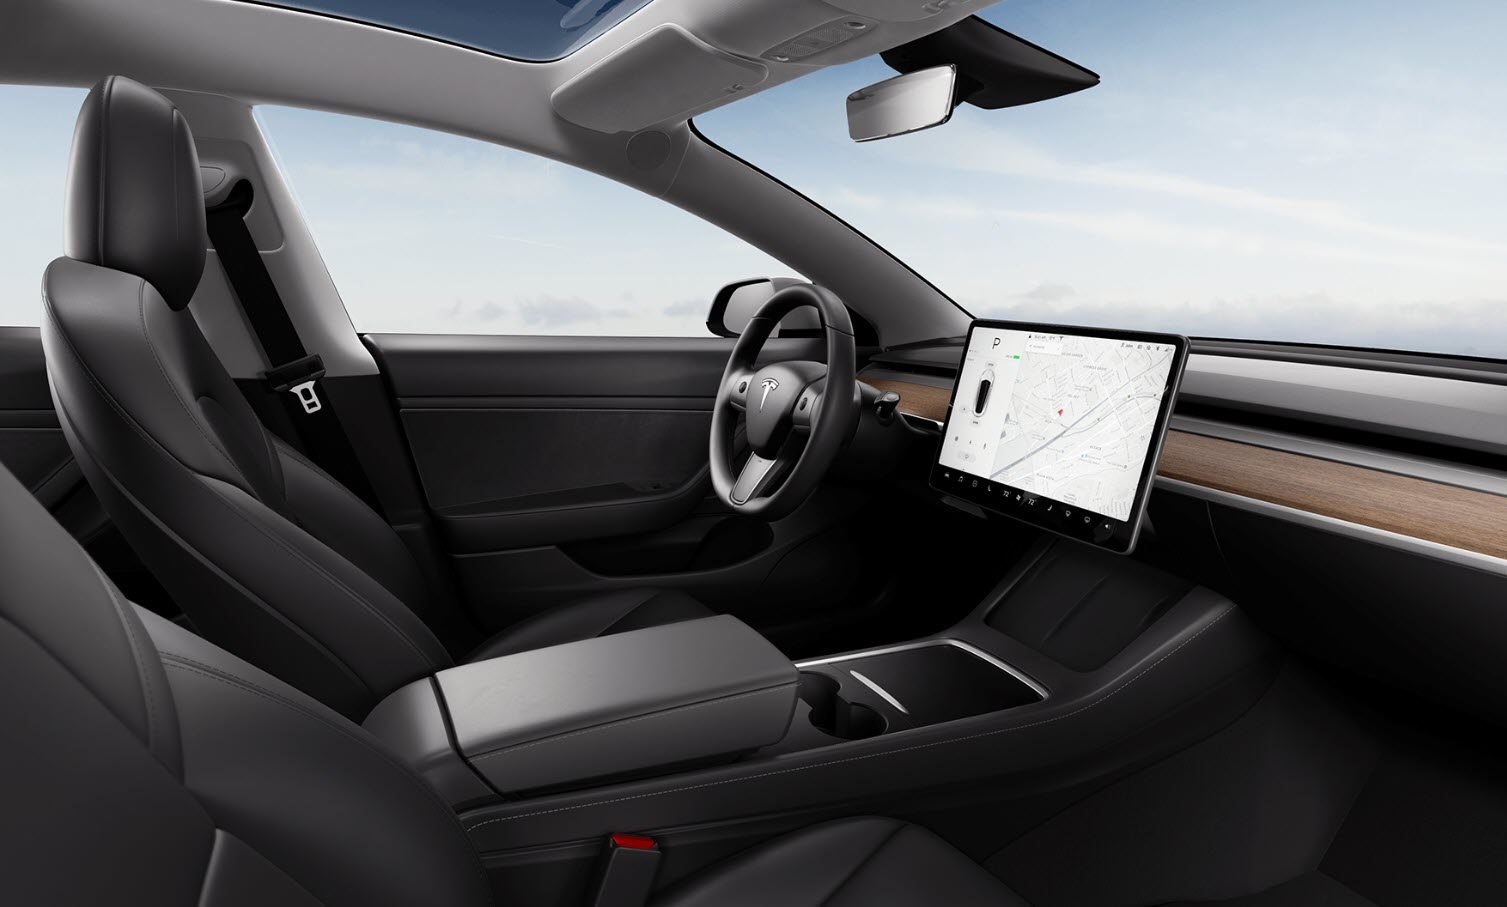 New Tesla Model 3 console